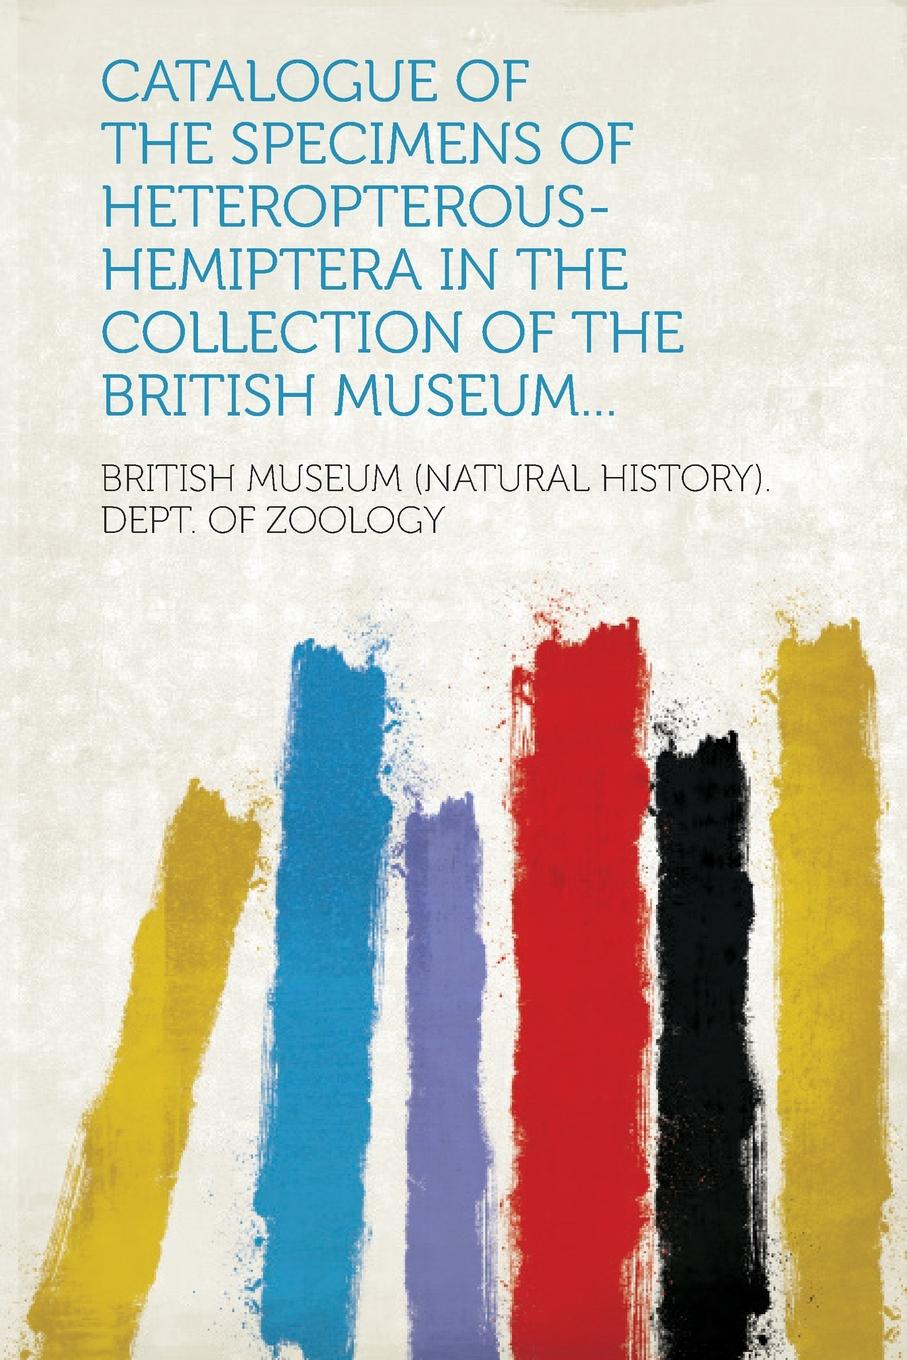 Catalogue of the Specimens of Heteropterous-Hemiptera in the Collection of the British Museum...